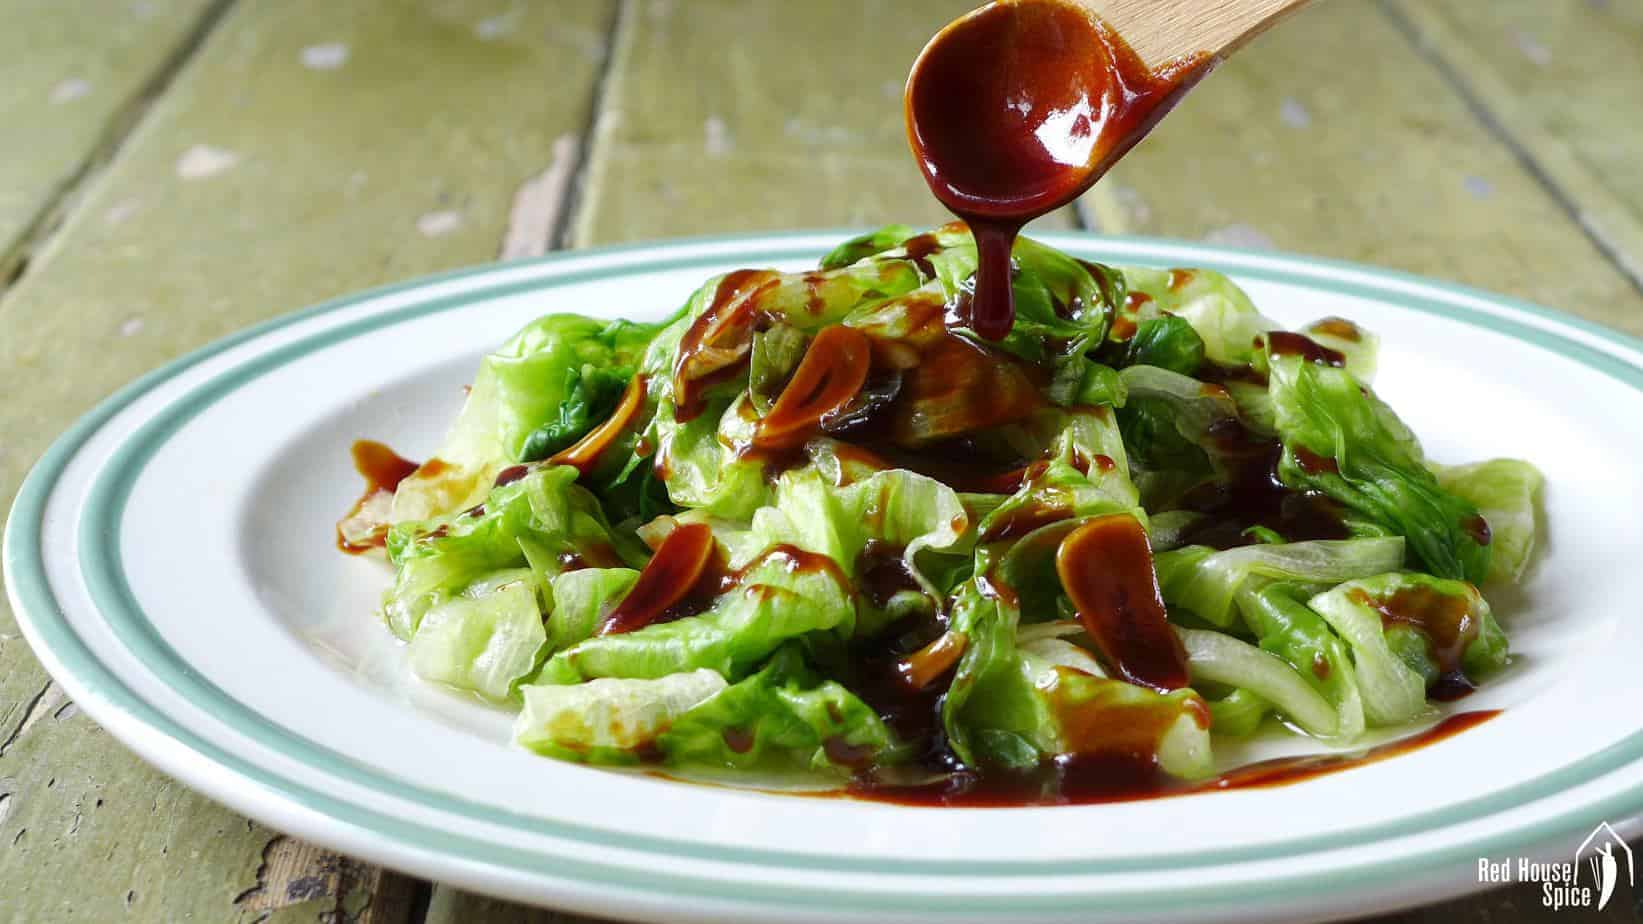 Iceberg lettuce with oyster sauce (蚝油生菜)